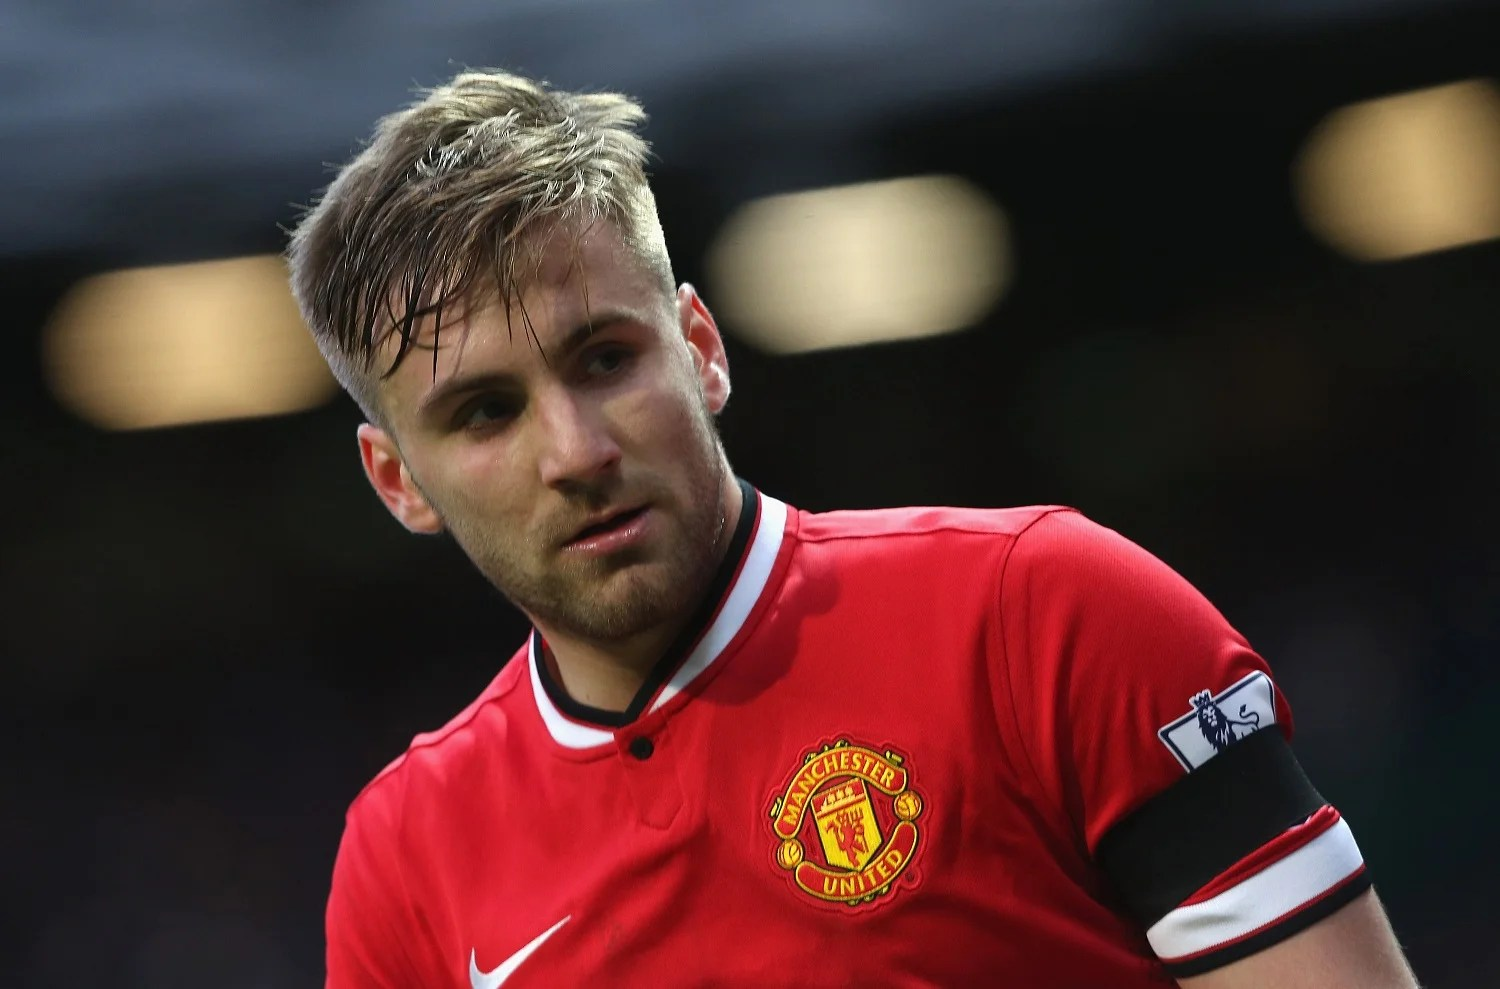 Luke Shaw Helps Out Of Pocket Manchester United Fan After